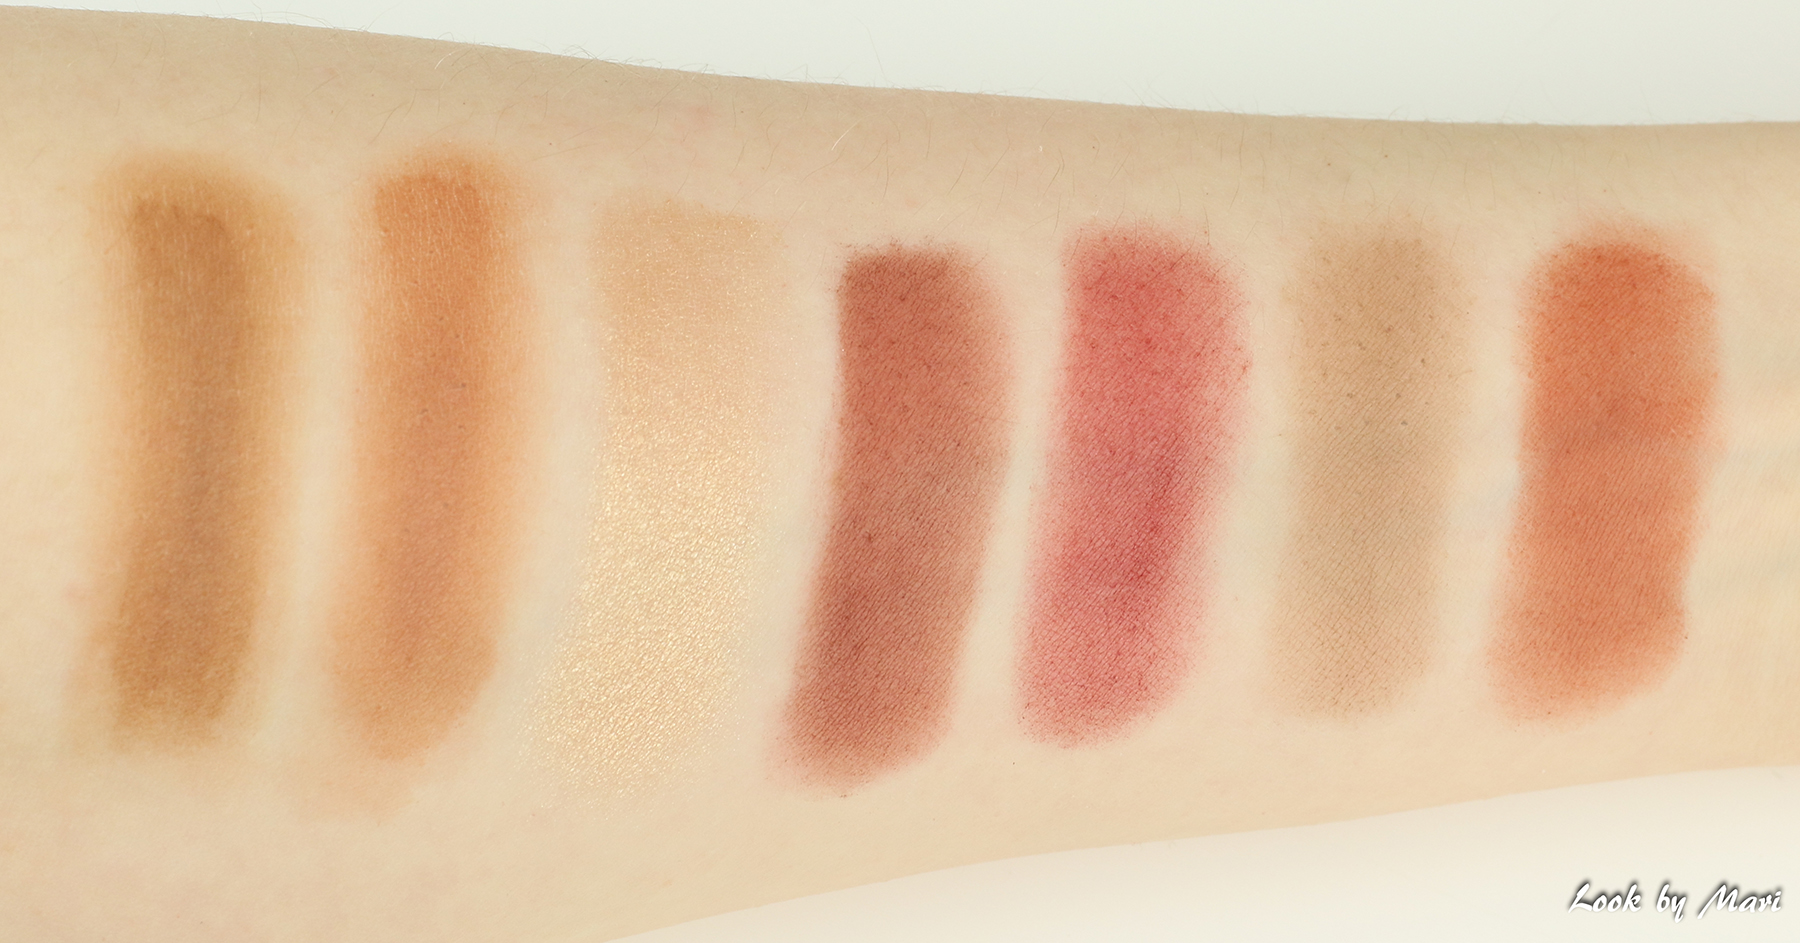 10 Anastasia beverly hills modern renaissance eyeshadow palette swatches swatch colors shades